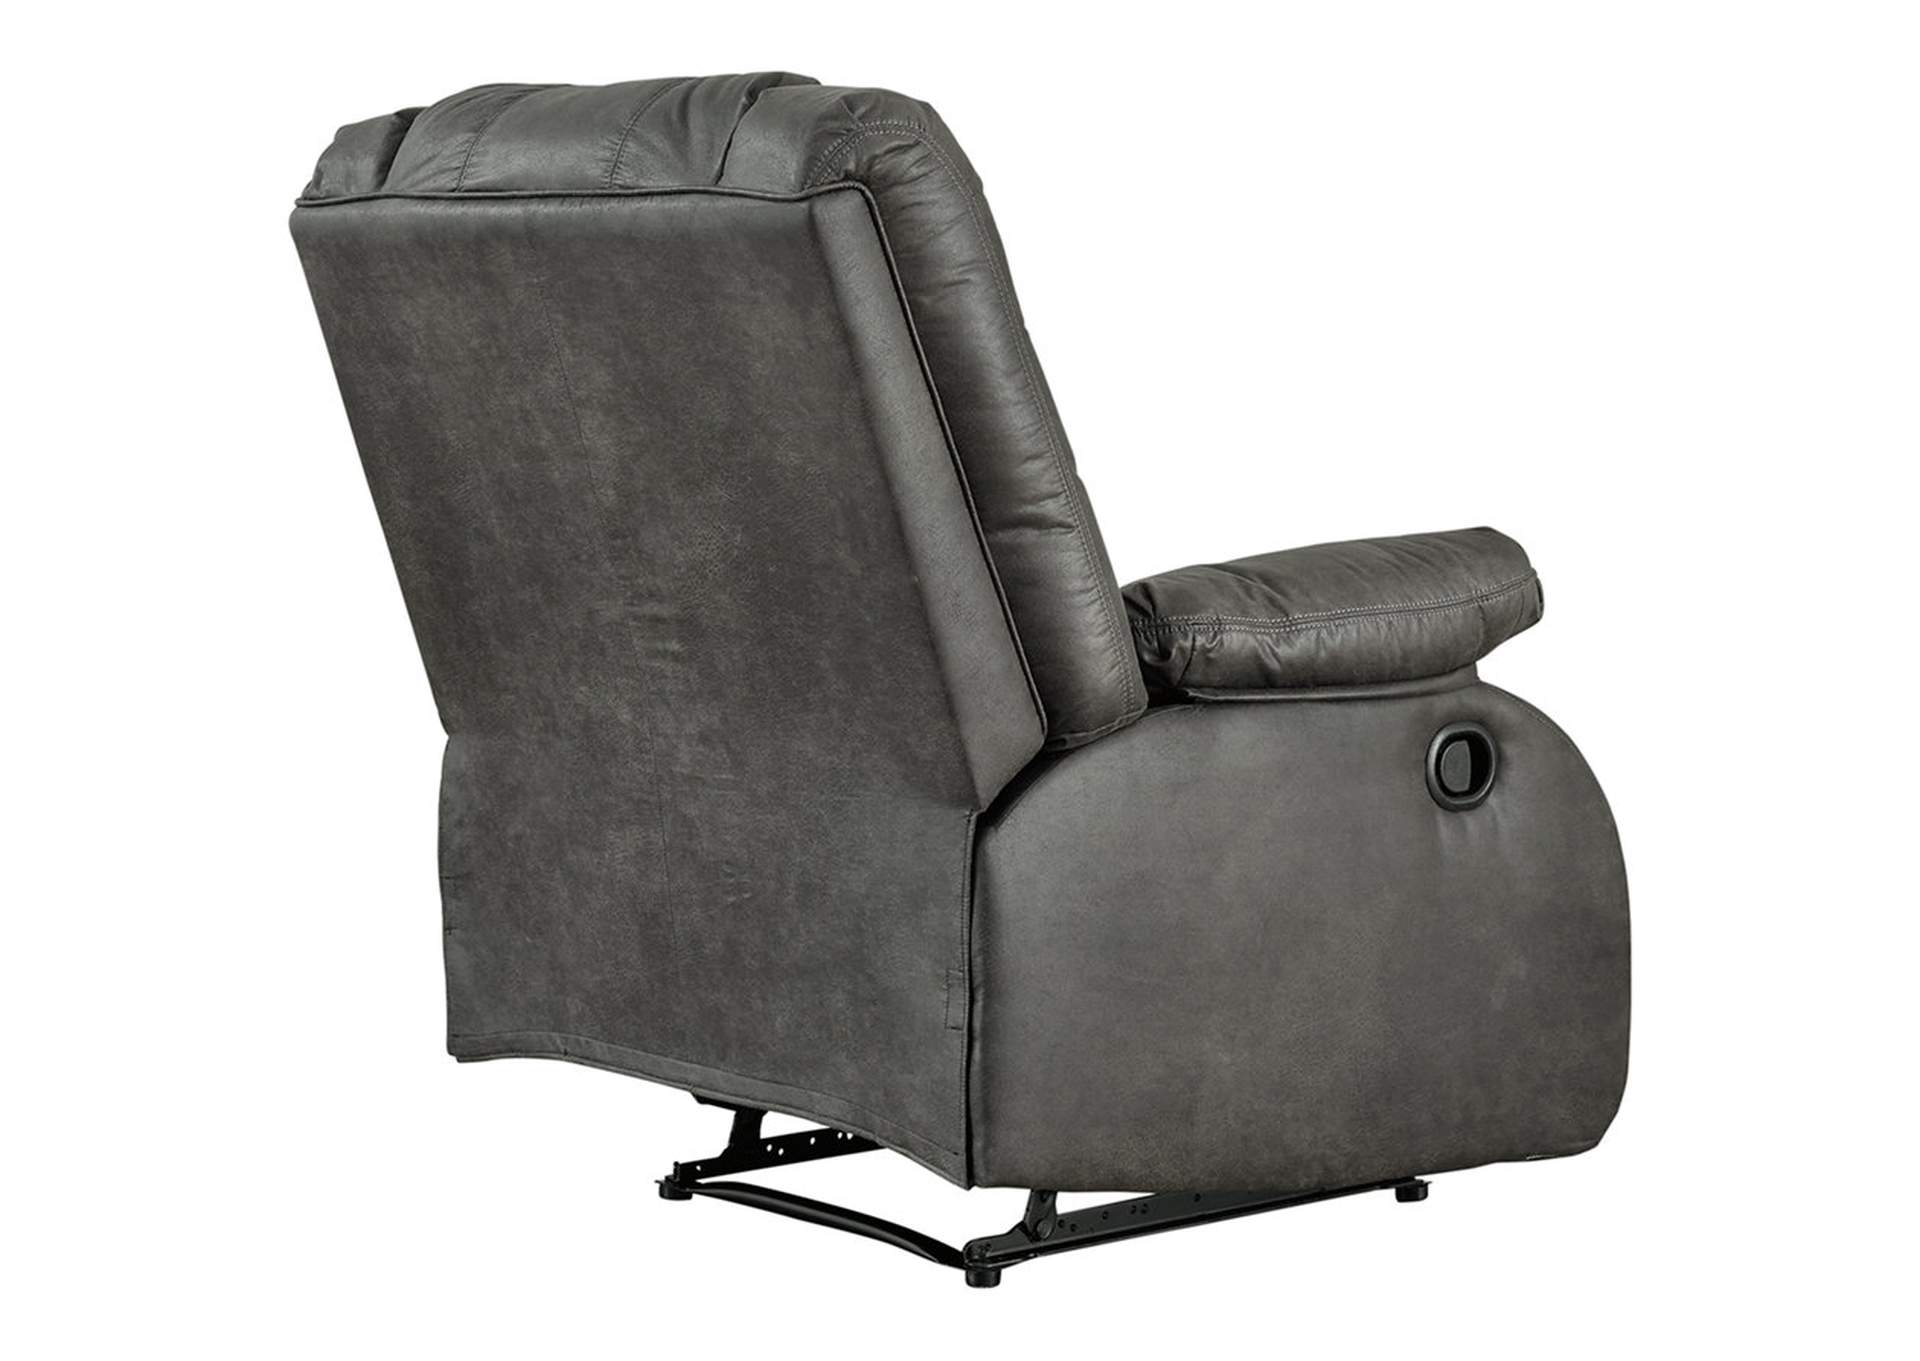 Bladewood Slate Recliner,Signature Design By Ashley